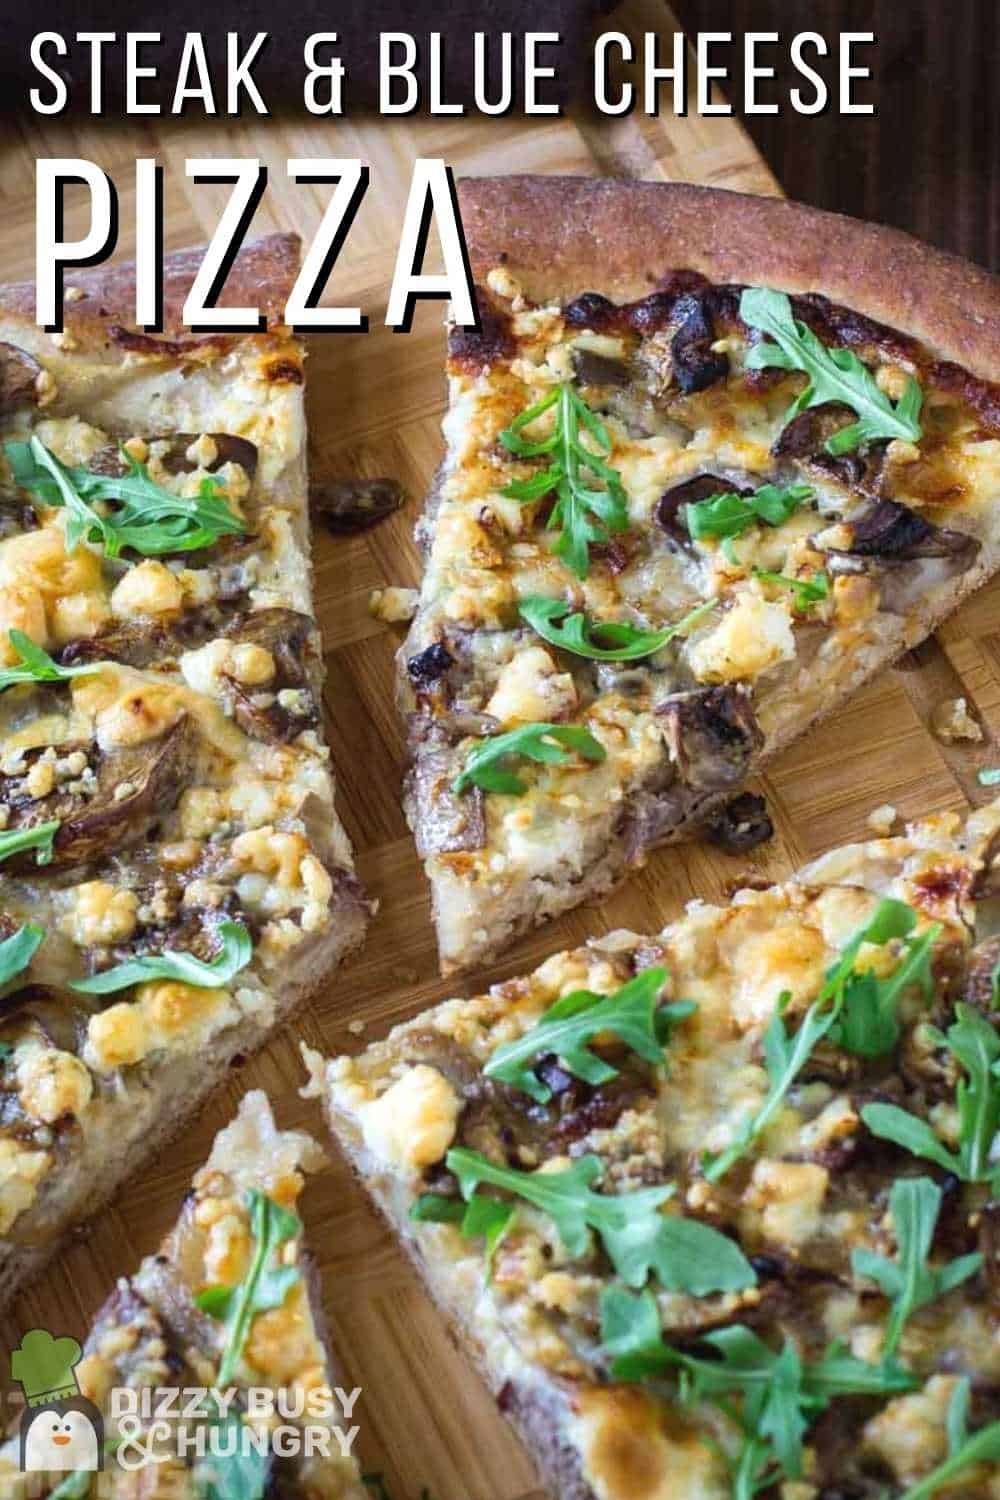 Side angled shot of multiple slices of steak pizza garnished with arugula on a wooden cutting board.